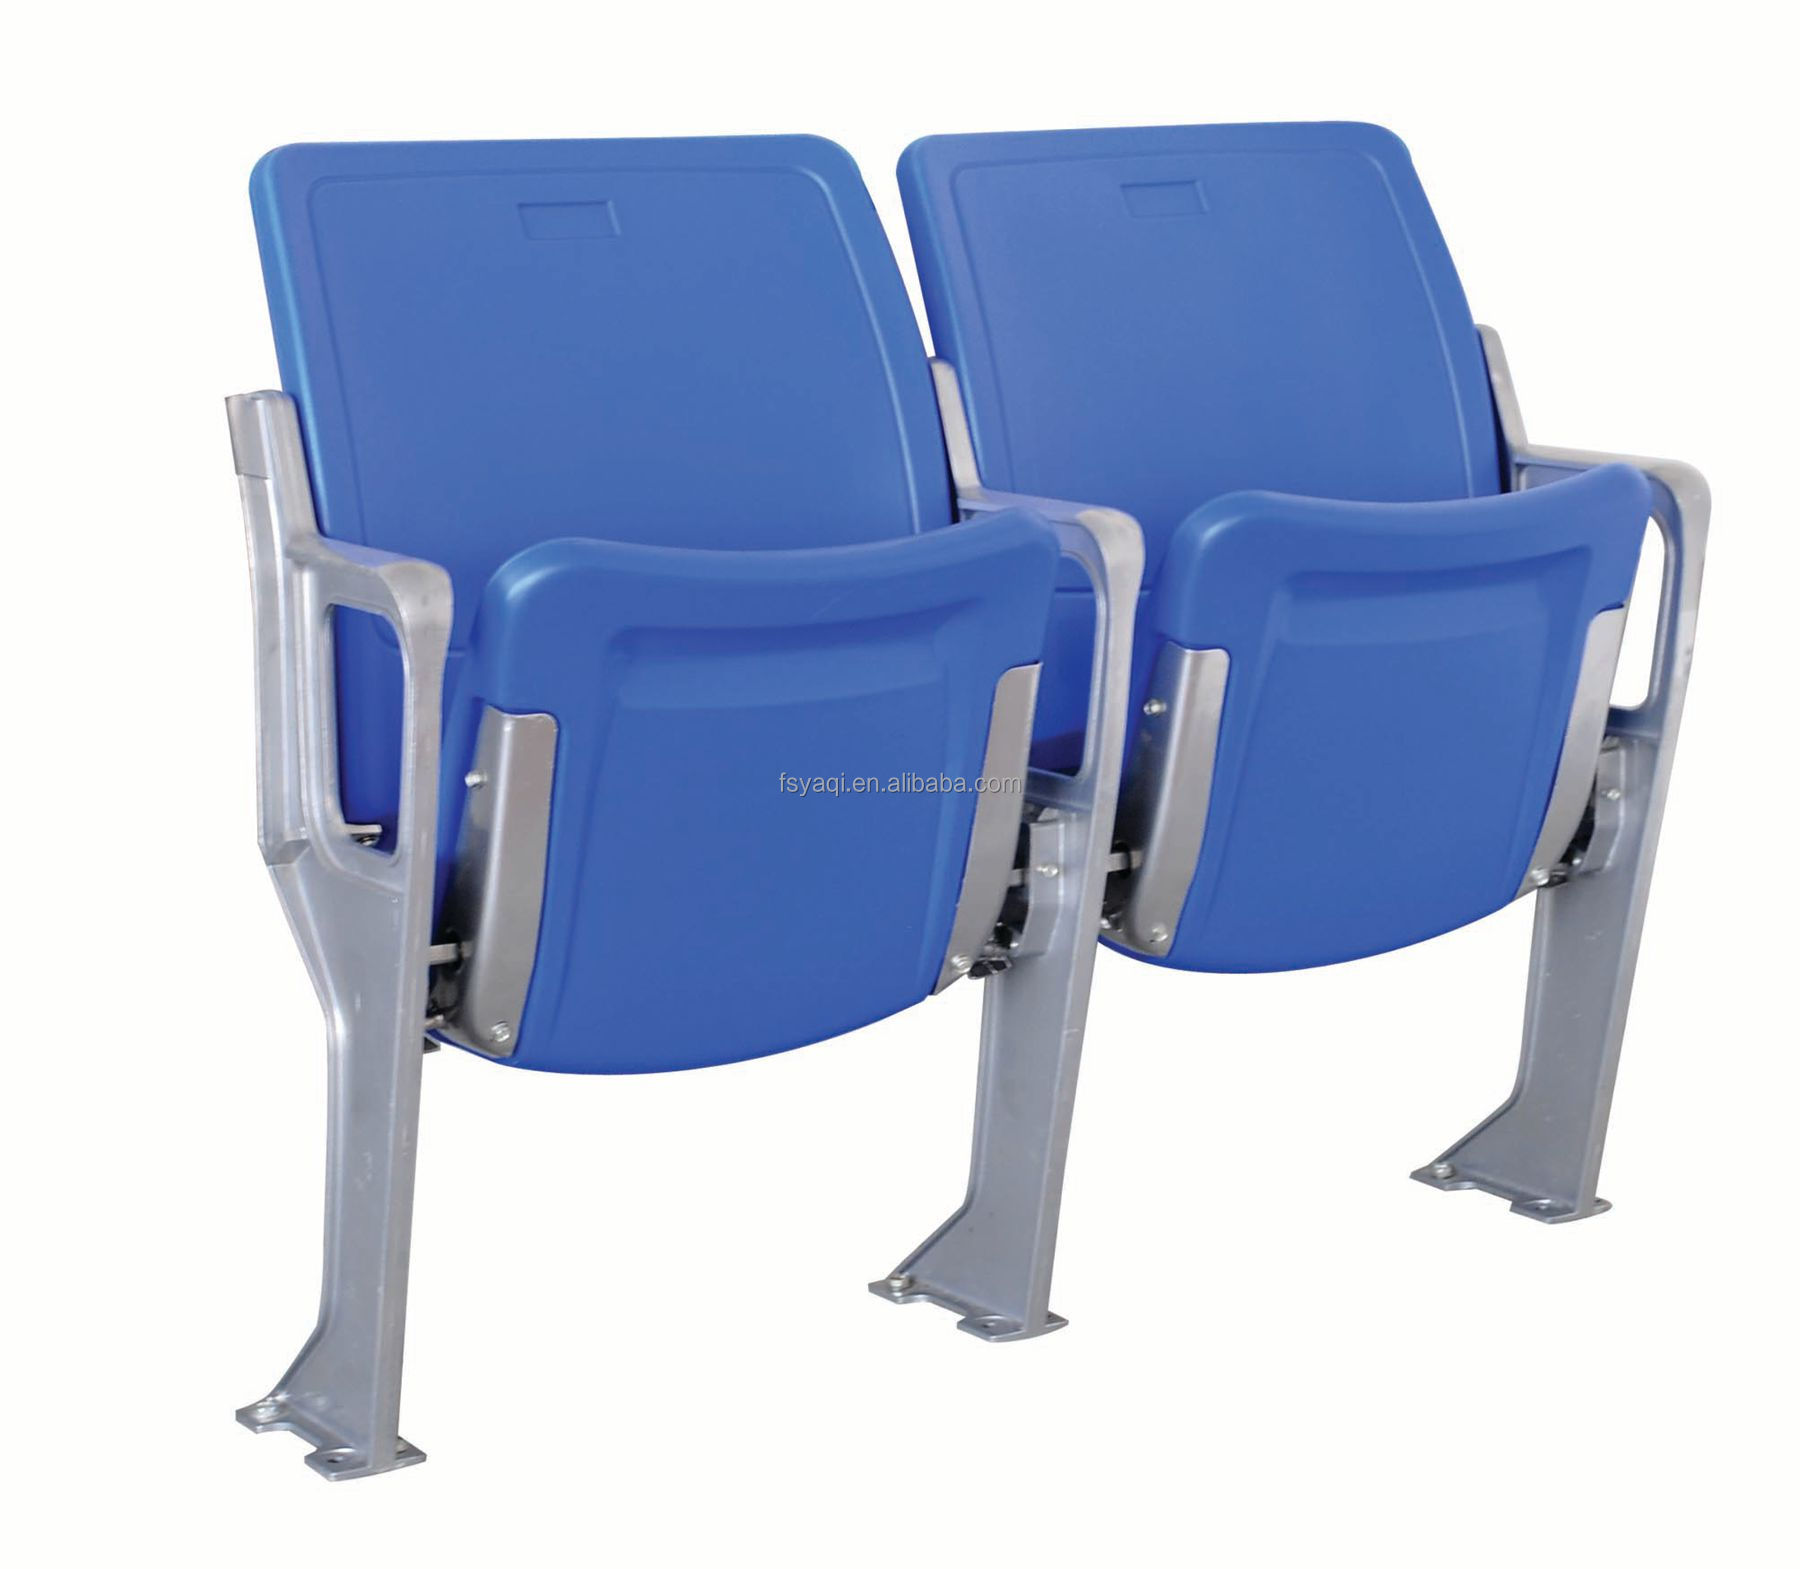 Plastic Stadium Chair Plastic Stadium Chair Suppliers and